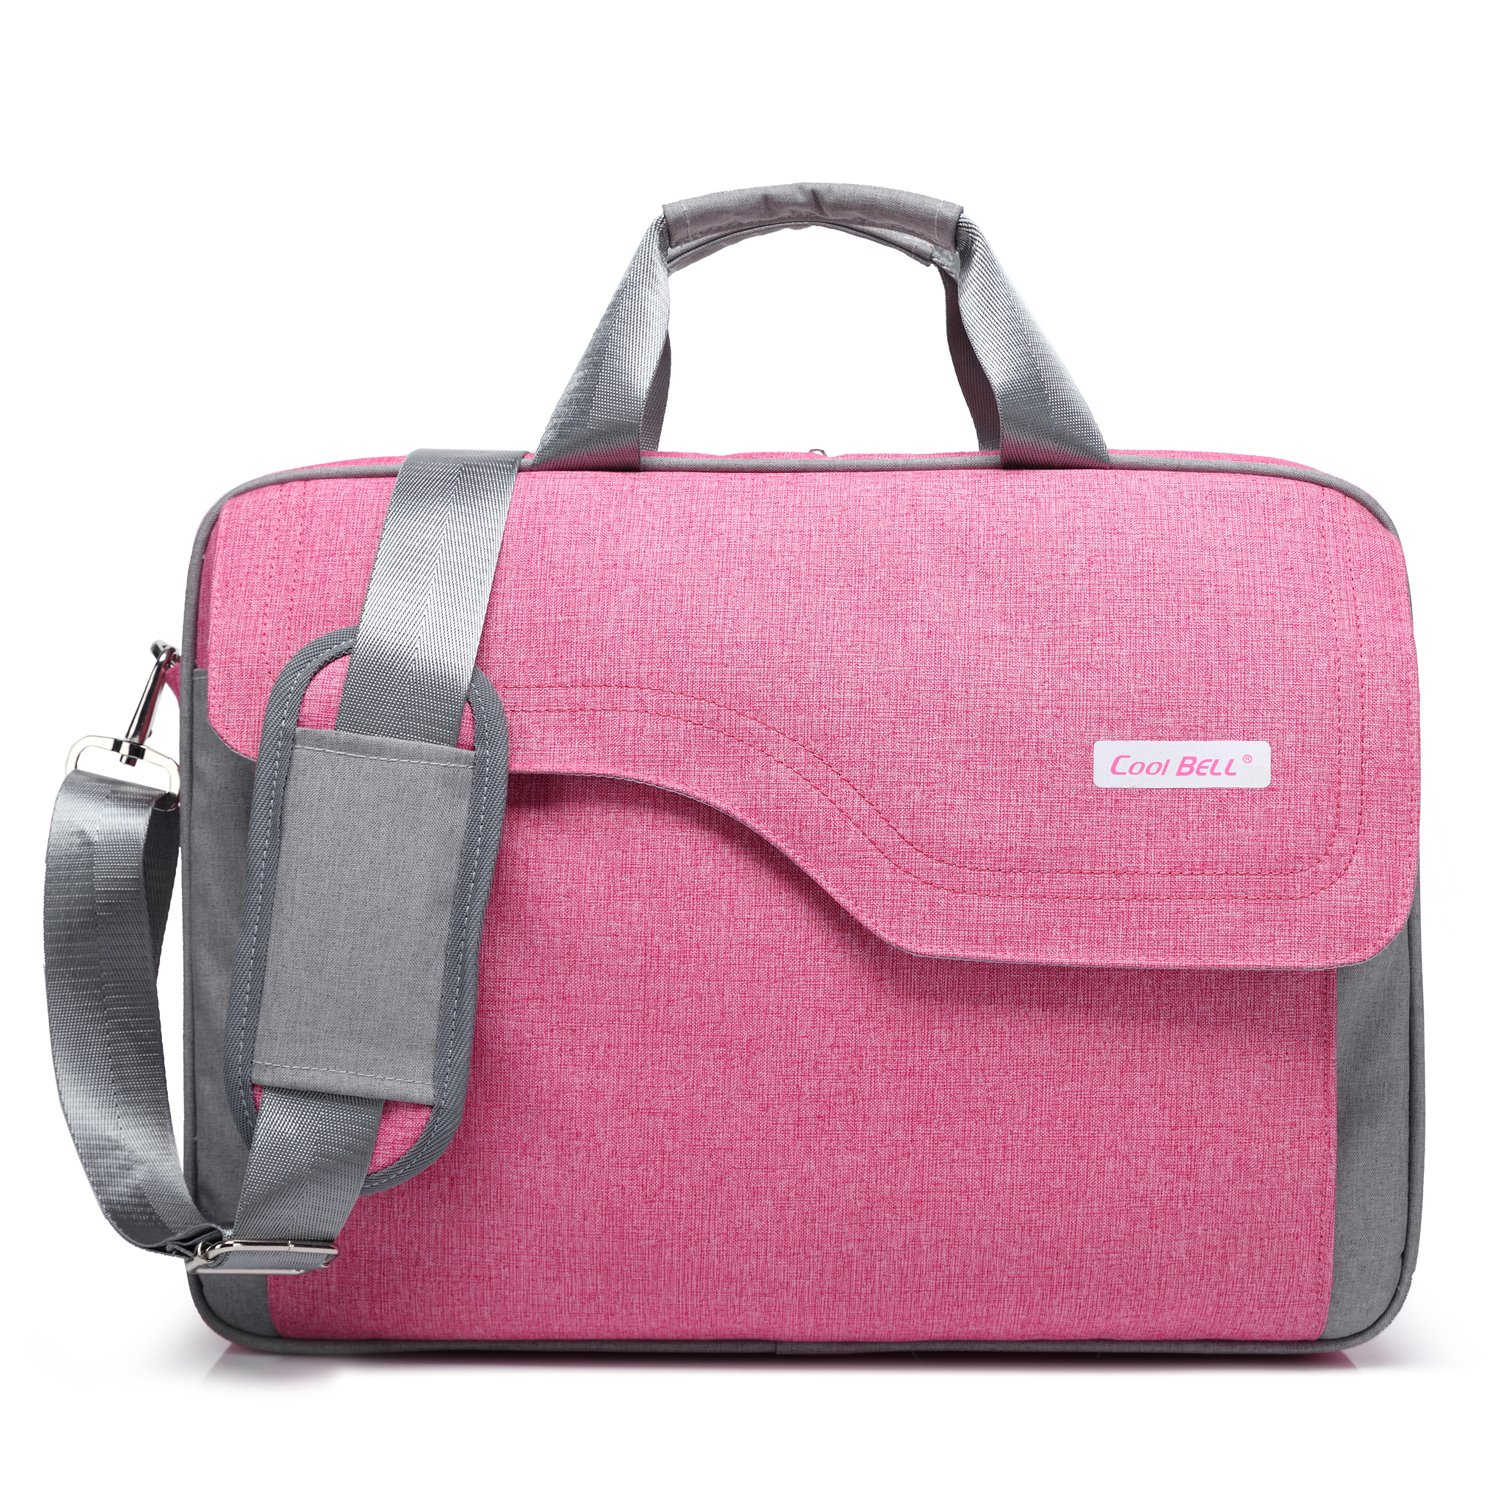 CoolBELL 15.6 Inch Nylon Laptop Bag Shoulder Bag Multicompartment Messenger Hand Bag Briefcase For iPad Pro/laptop/Macbook/Ultrabook/Men/Women/College (Pink)